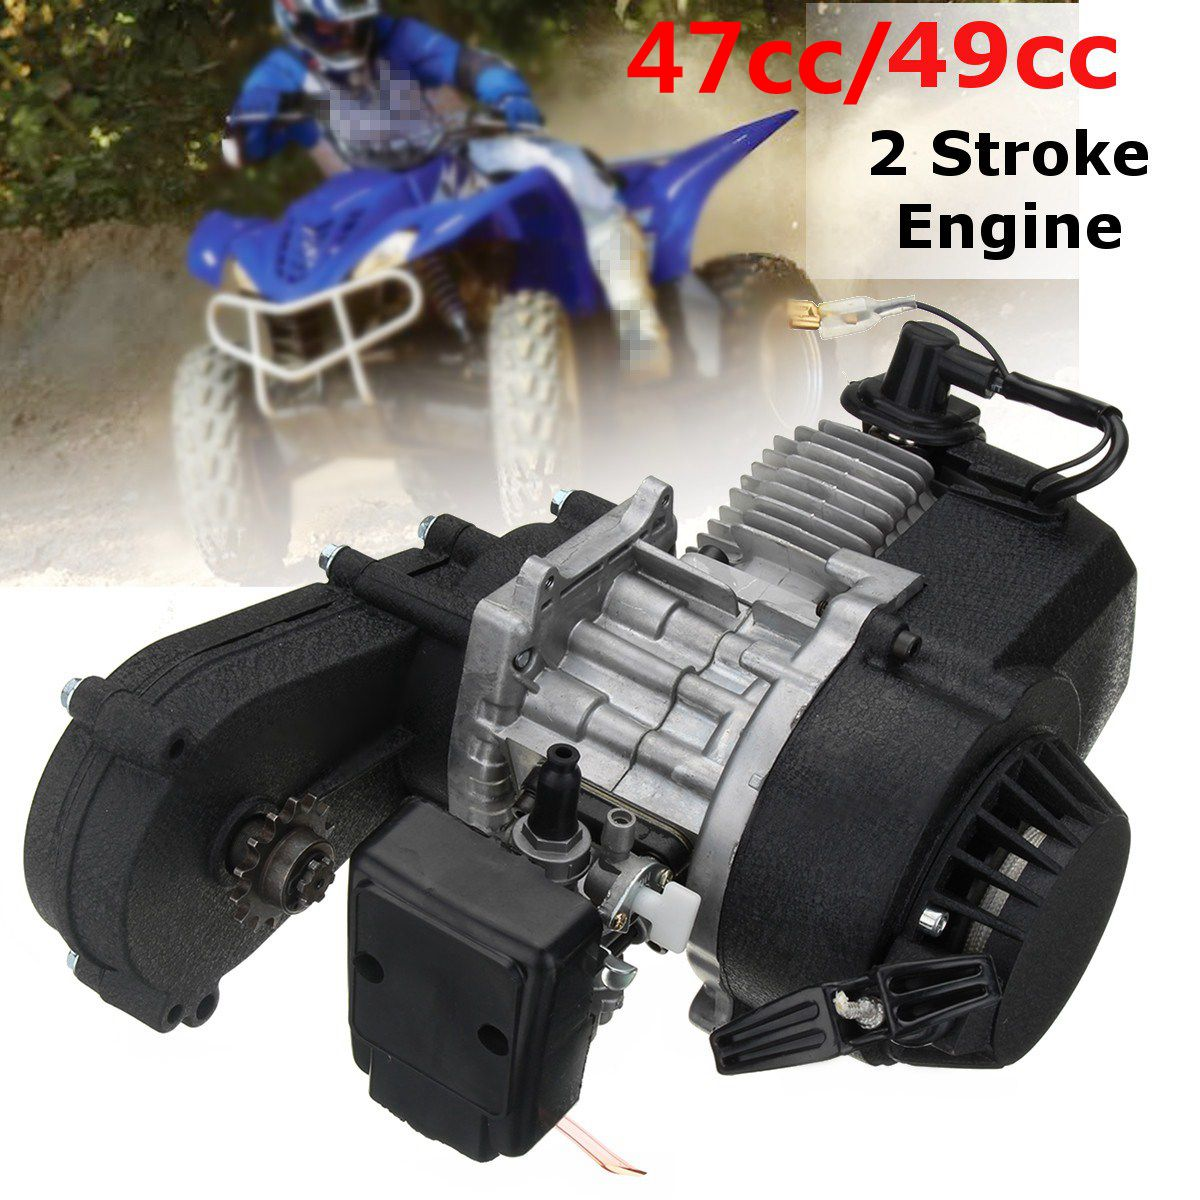 49cc /47cc Engine 2-Stroke Electric Pull Start W/Transmission for Mini Moto Quad Bike 49cc engine plastic pull e start 13mm carburetor 2 stroke 47cc 49cc plastic mini moto pocket atv quad buggy dirt pit bike